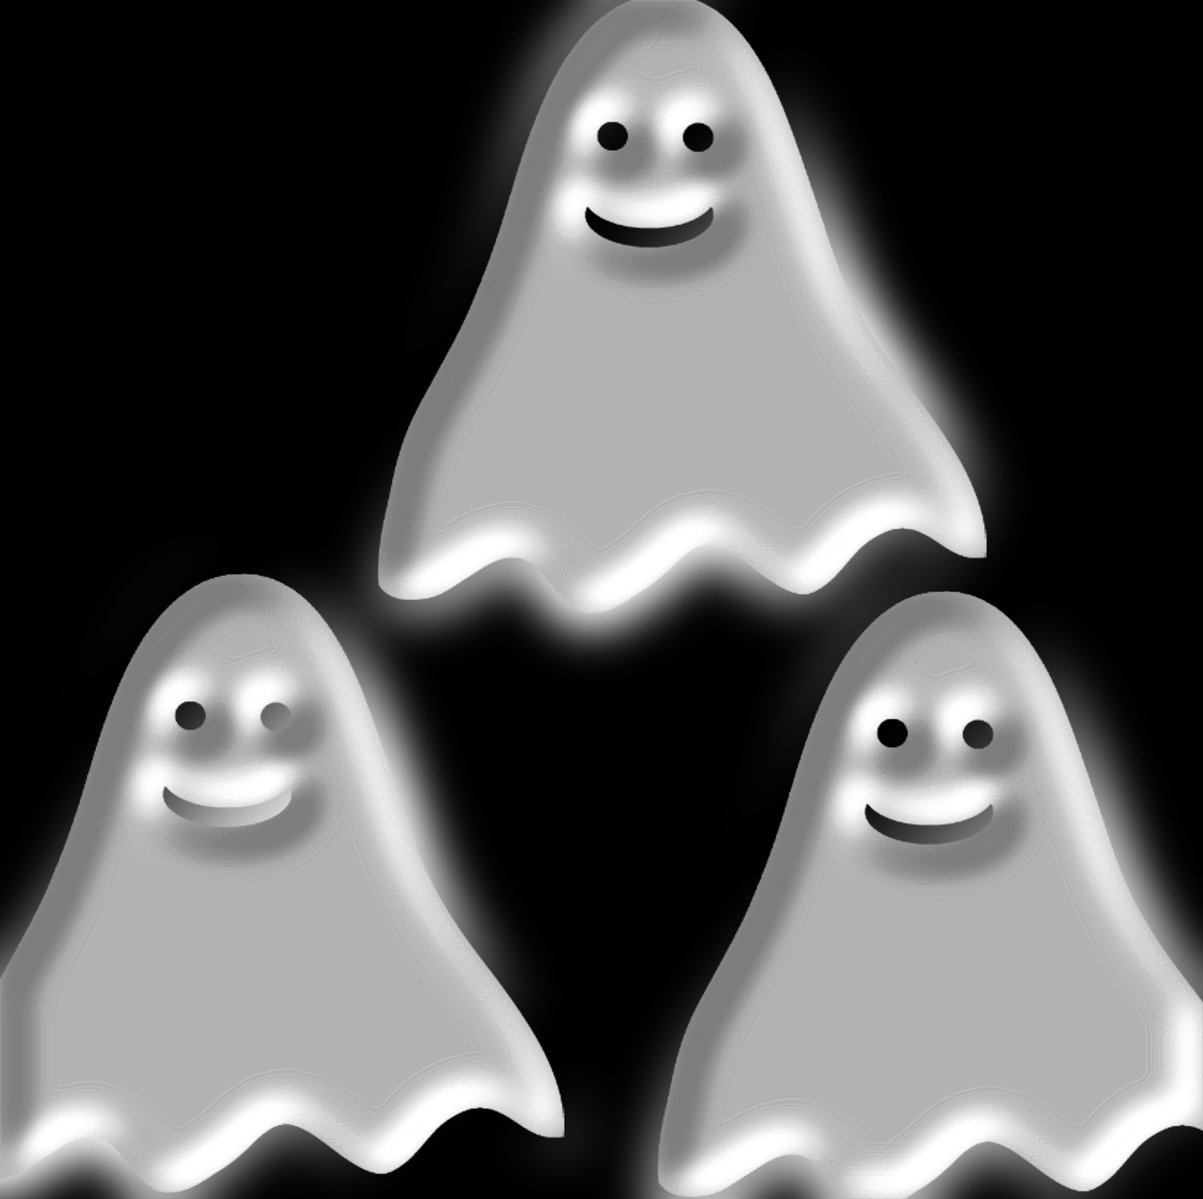 Free ghosts Stock Photo - FreeImages.com